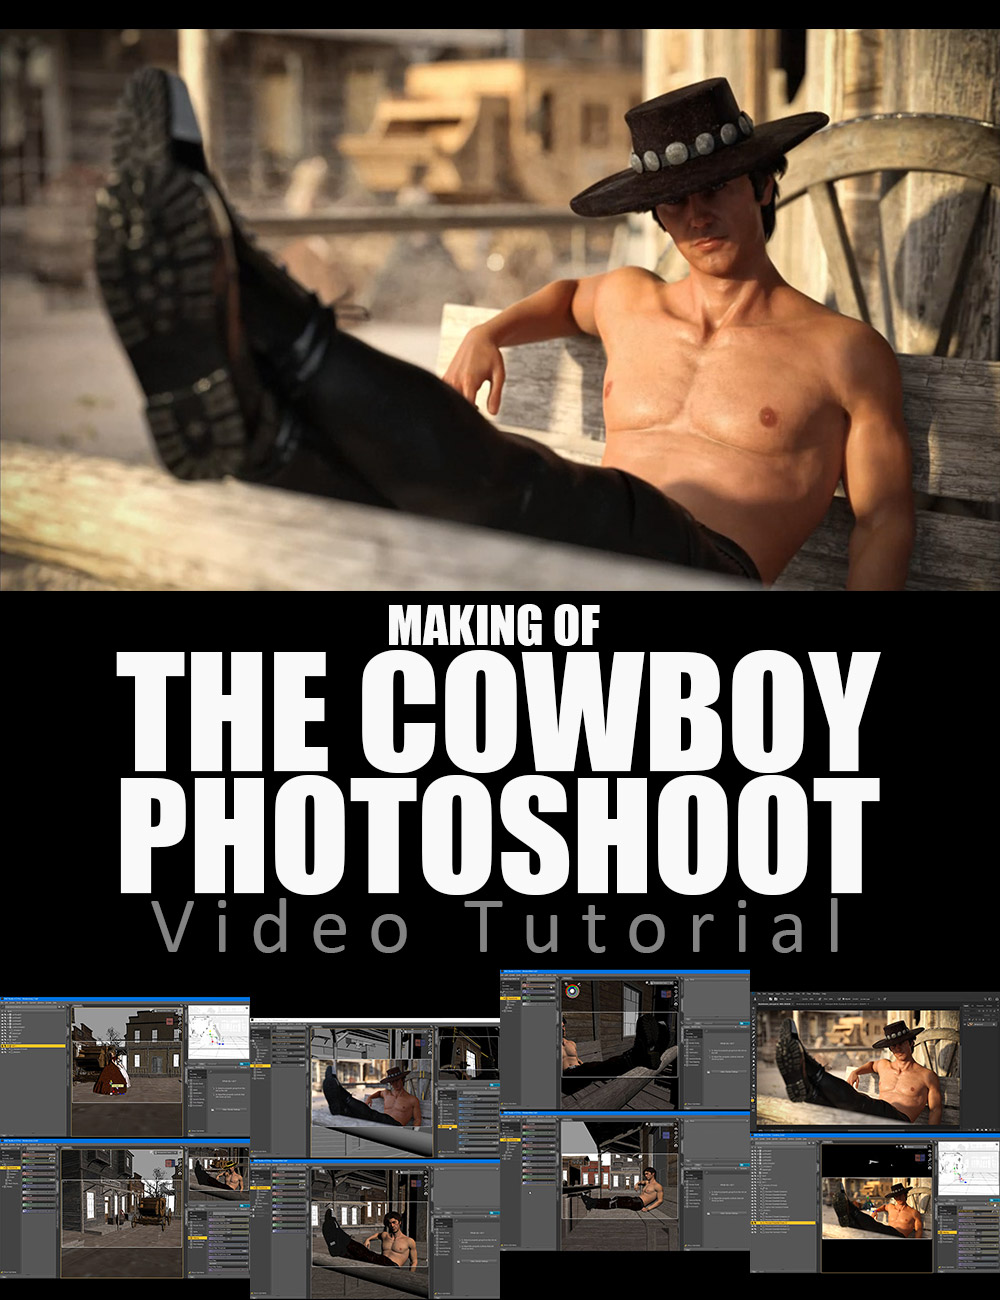 Making Of The Cowboy Photoshoot - Video Tutorial by: Dreamlight, 3D Models by Daz 3D